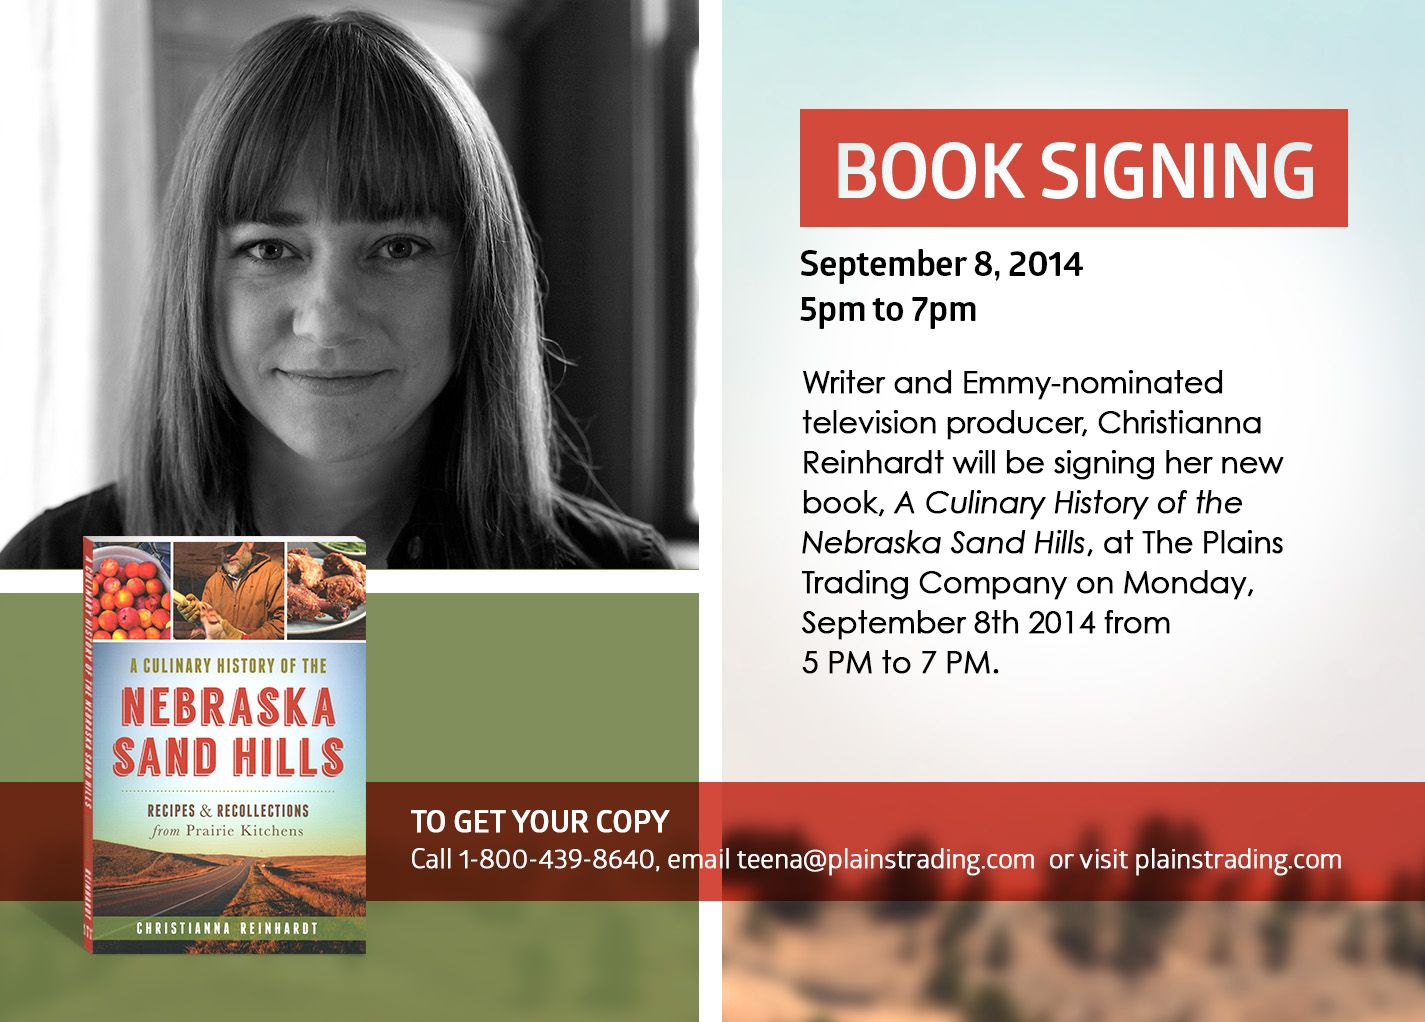 Book signing September 8, 2014